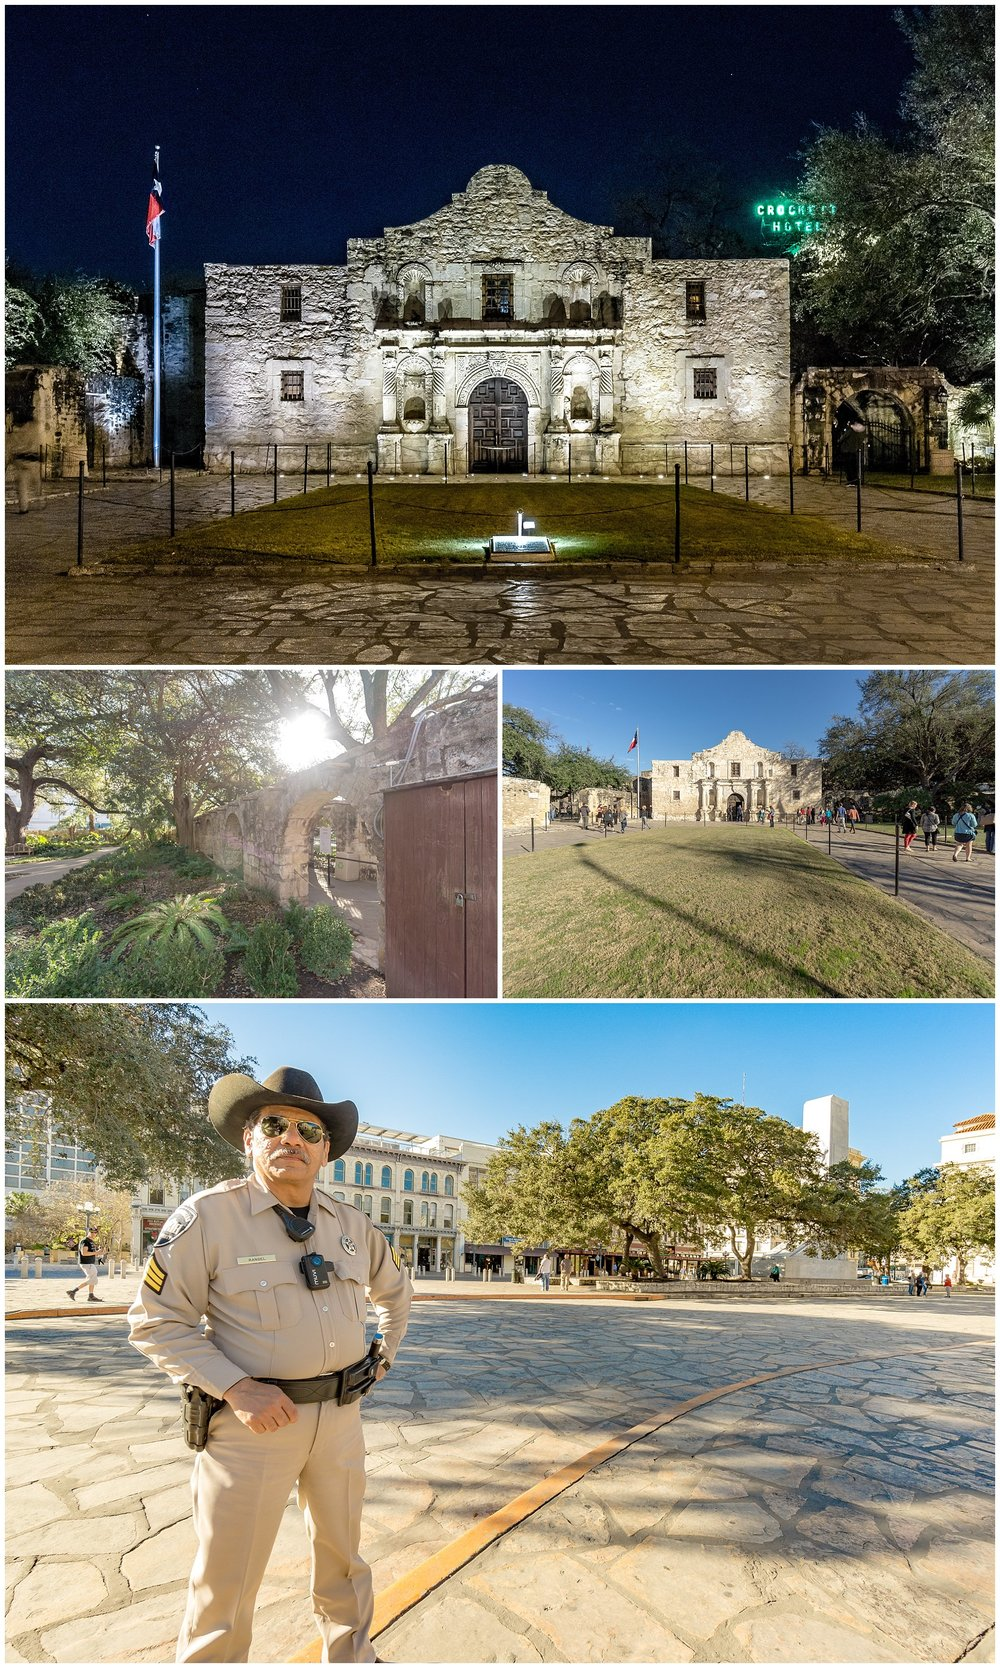 Nighttime Alamo, Garden at The Alamo, Daytime Alamo, Kickass Ranger at The Alamo